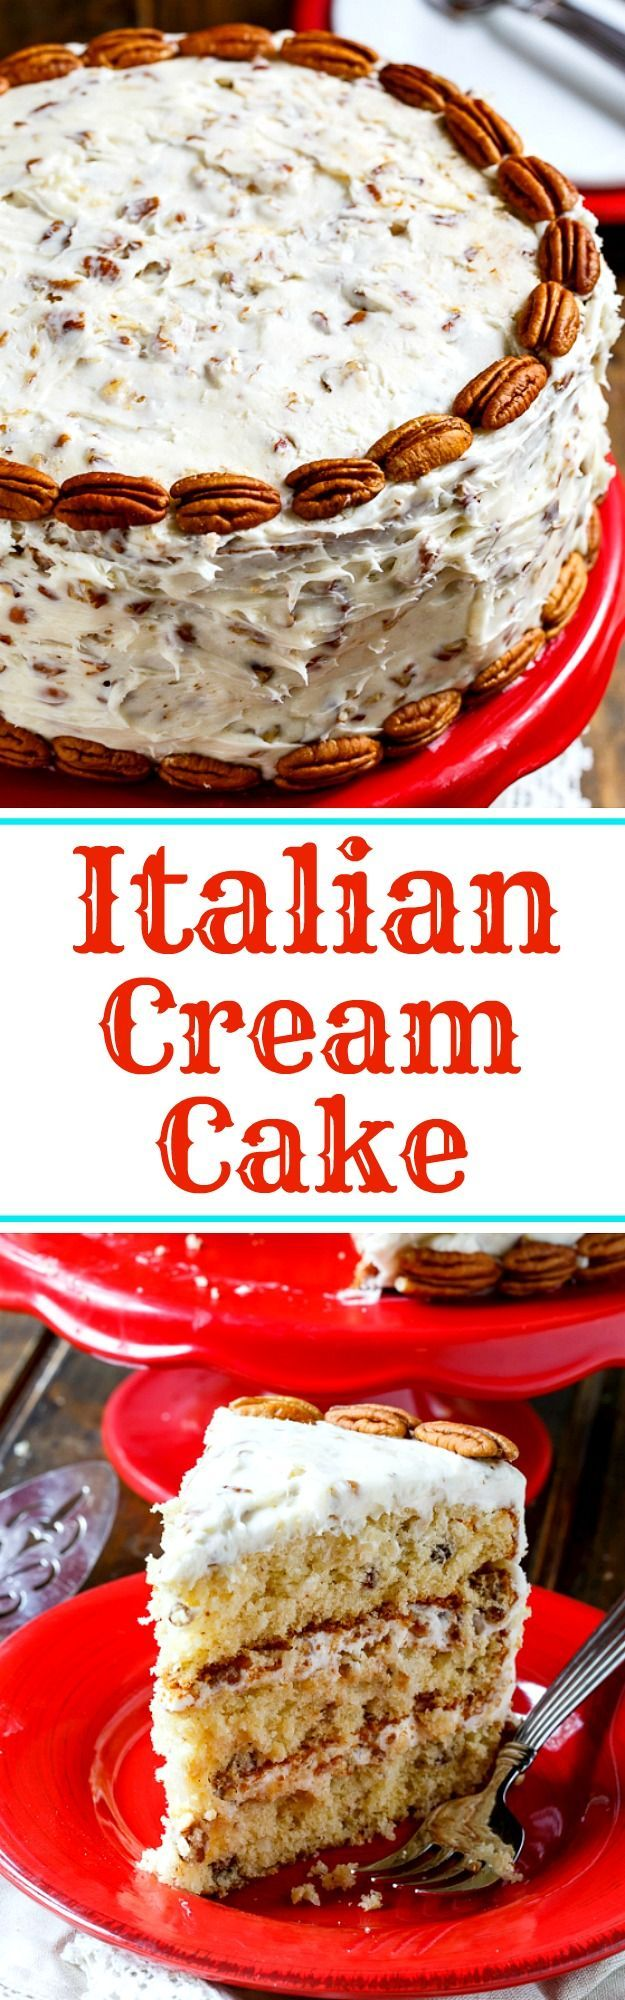 Italian Cream Cake has three layers of moist cake covered in cream cheese frosting with plenty of coconut and pecans. It's not hard at all to make and is perfect for a holiday celebration.